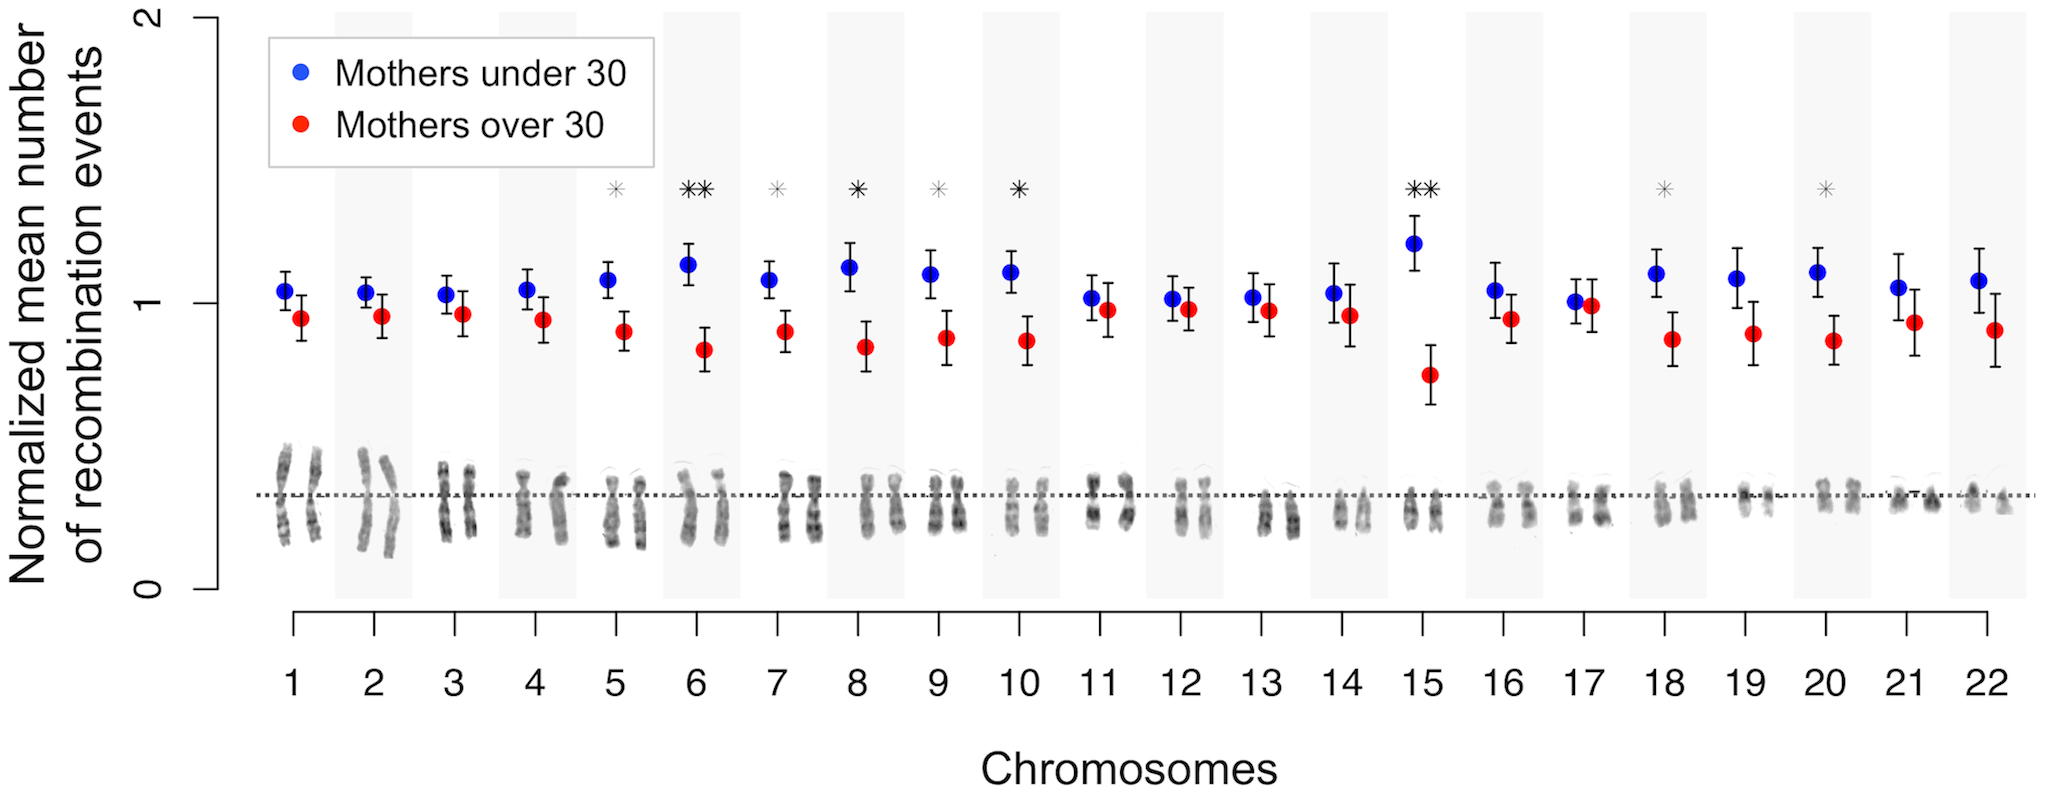 Chromosome-specific shifts in normalized means (and standard errors) of the number of maternal crossovers for mothers under and over 30 years of age.